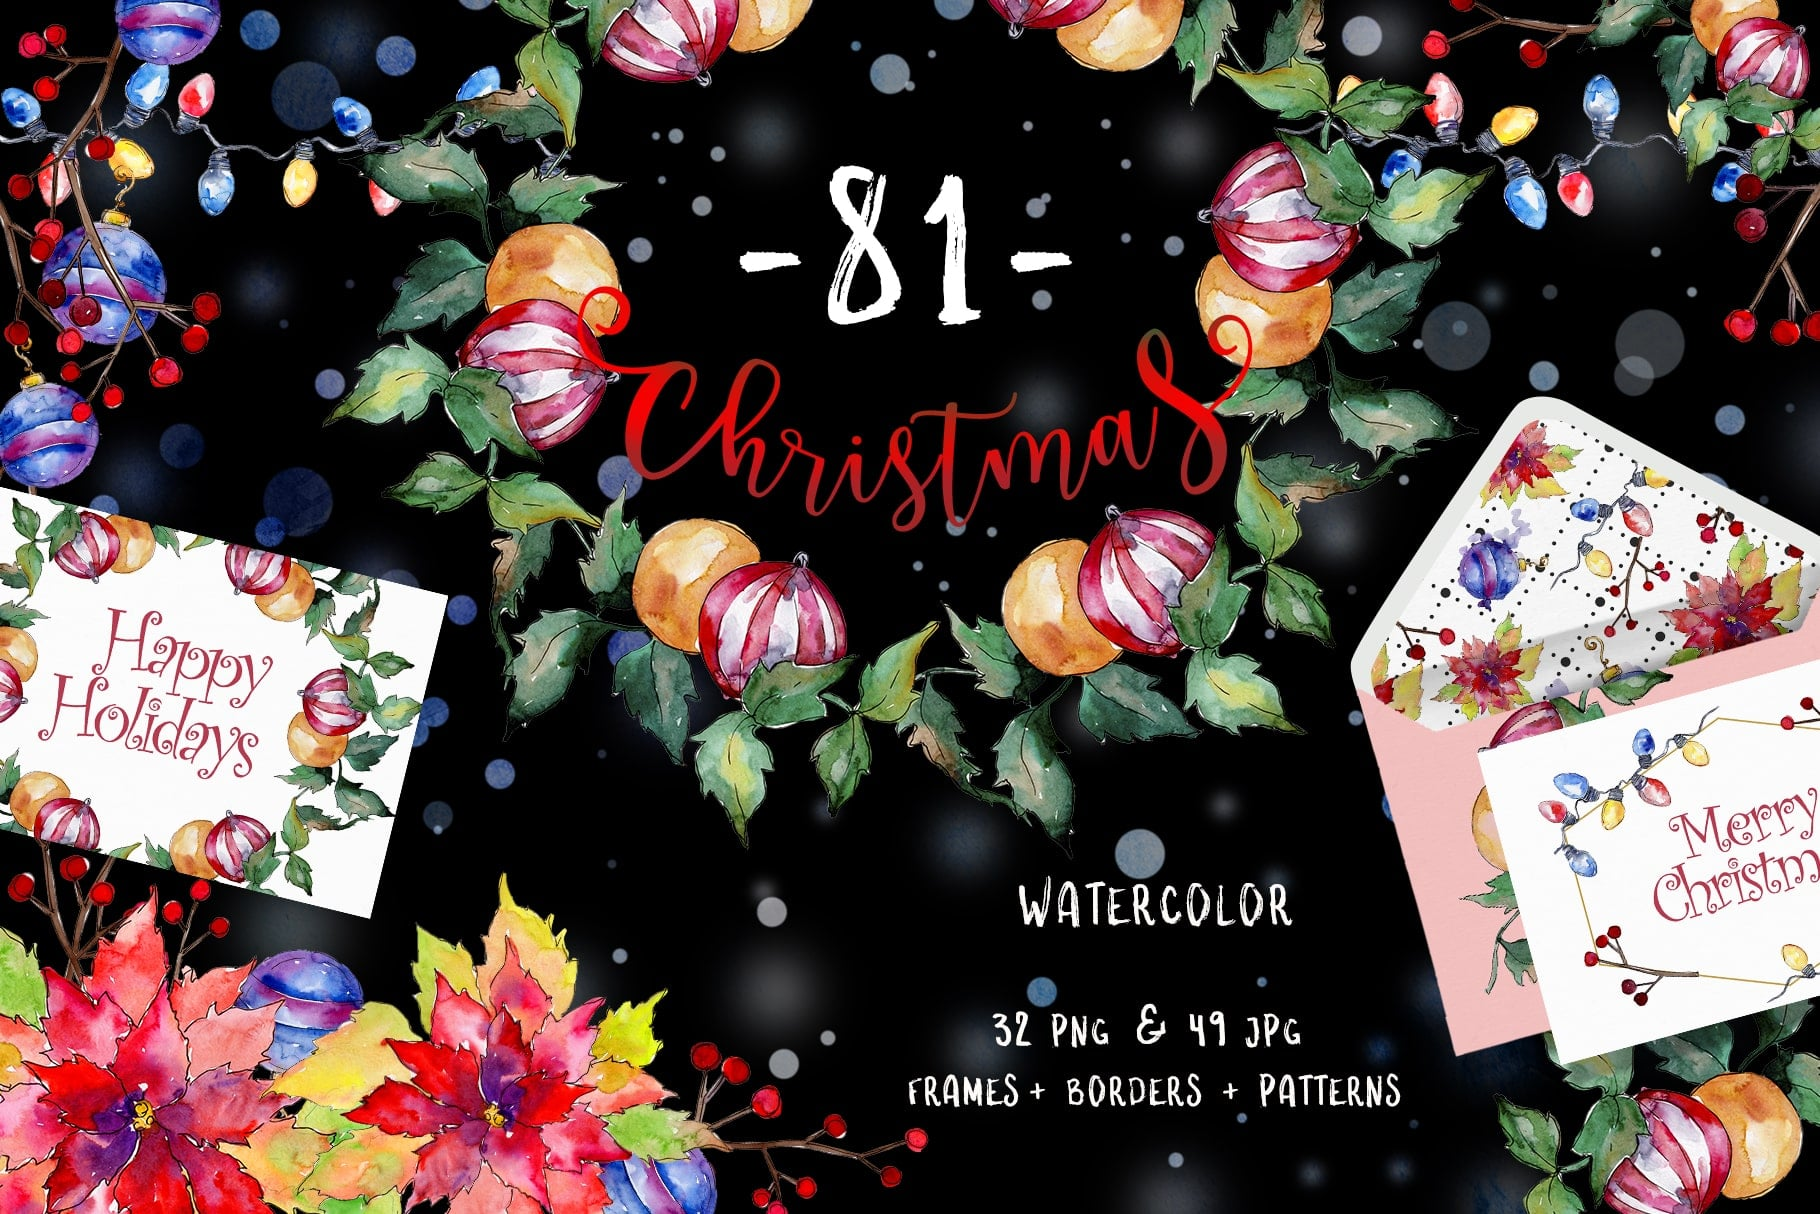 Christmas Happy Holiday PNG Watercolor Set - $11 - 2a8d0ed2ab1db4206664551c07f5075a resize min